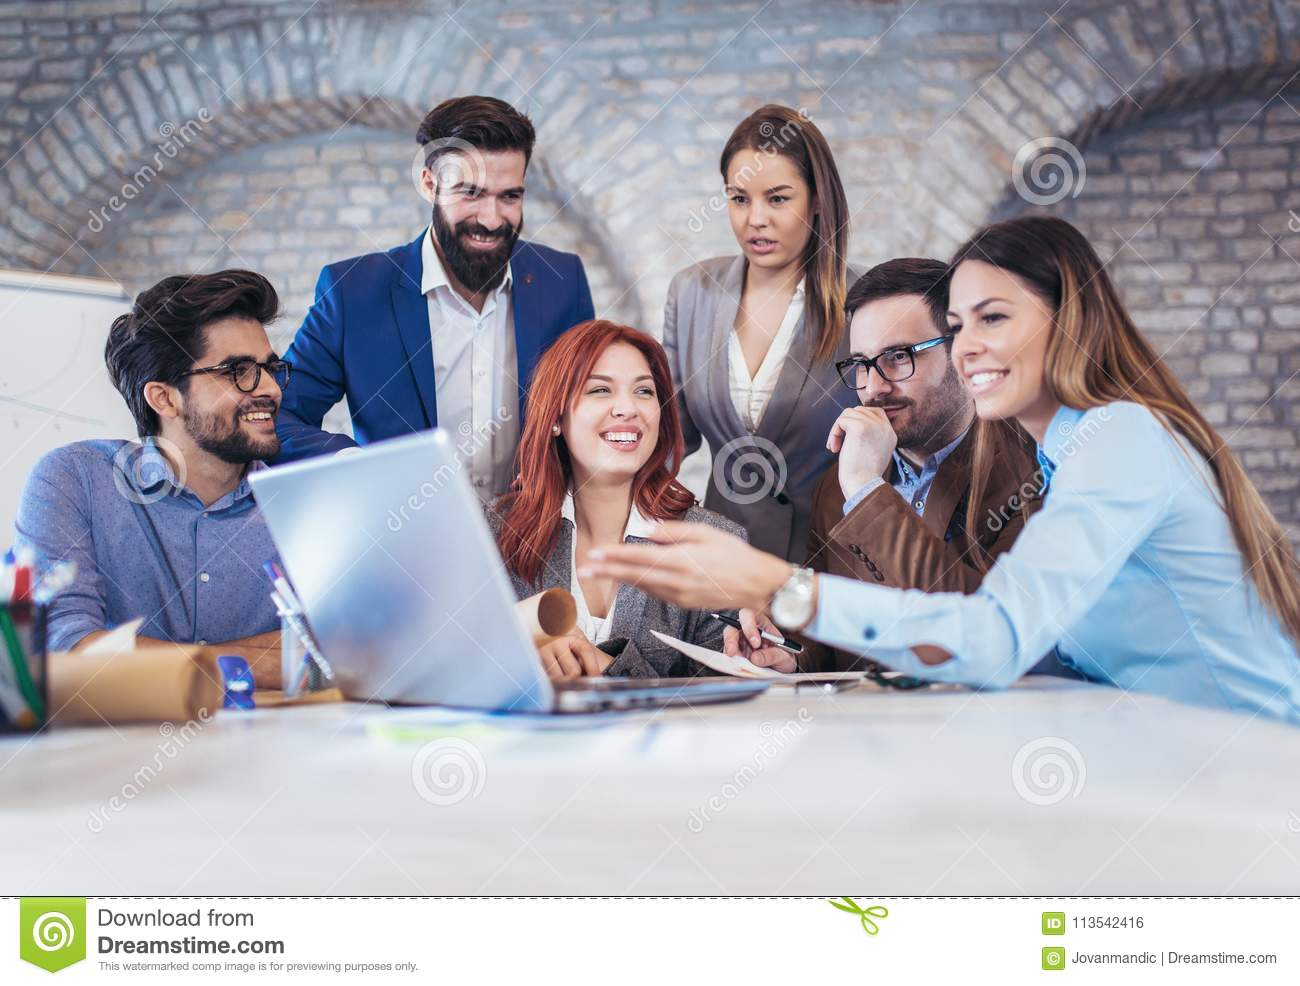 Business people meeting to discuss ideas in modern office